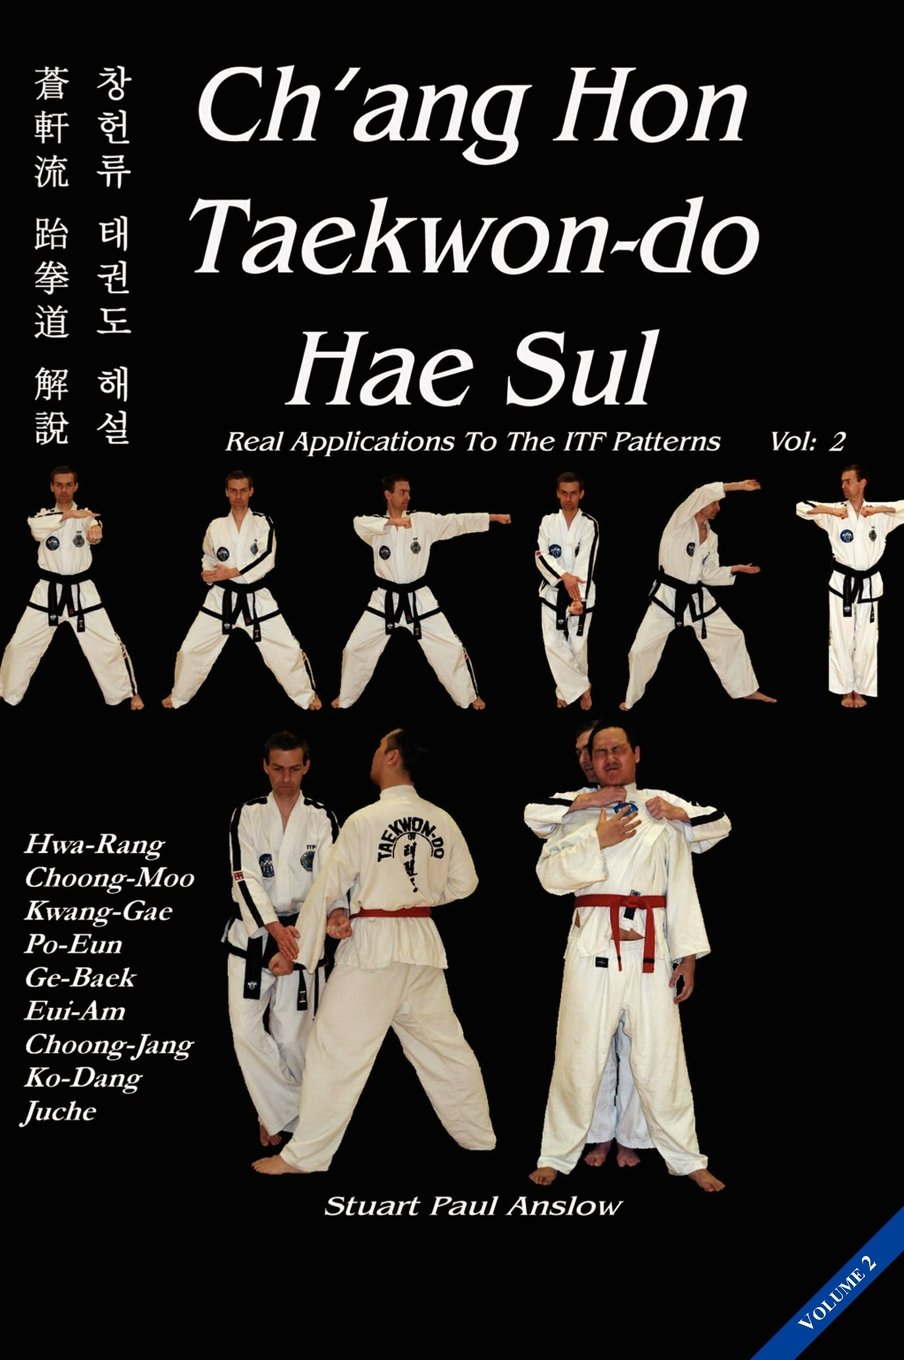 Ch'ang Hon Taekwon-do Hae Sul, Vol 2